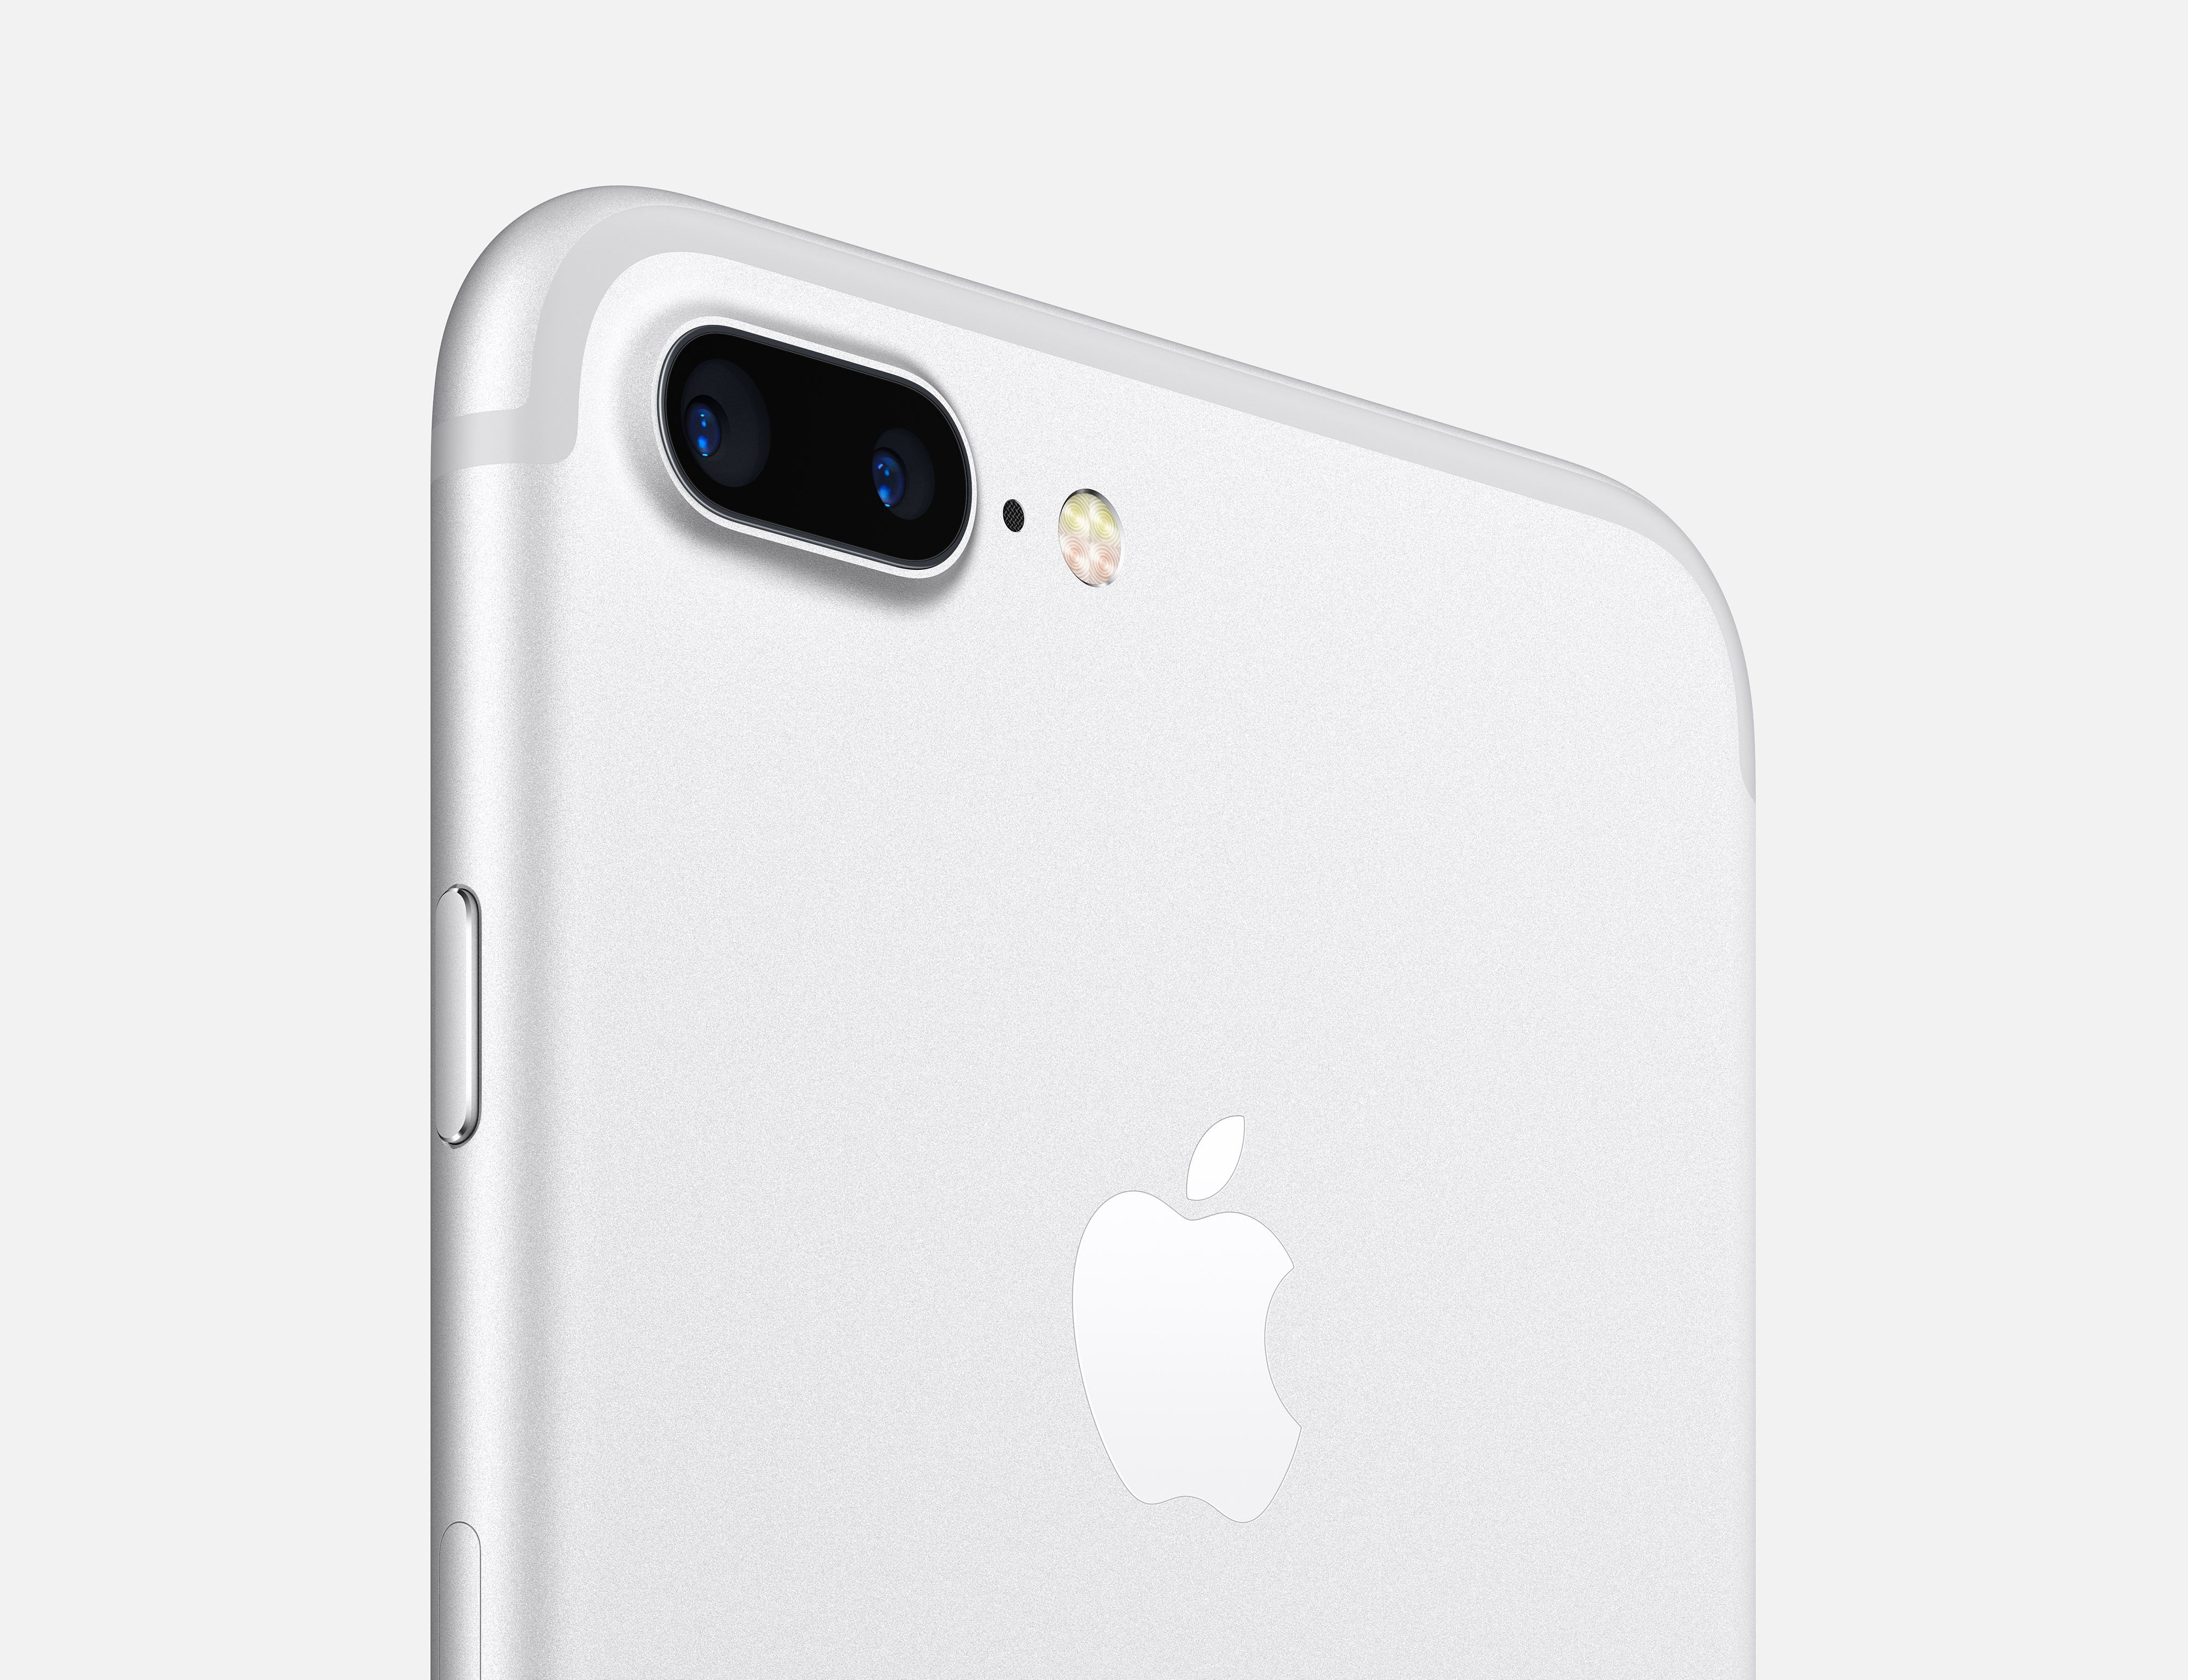 The Iphone 7 Plus Already Offers Pretty Substantial Upgrades Over The Iphone 6s Plus But What About The Iphone 6 Plus Appl Iphone 7 Plus Iphone Buy Iphone 7